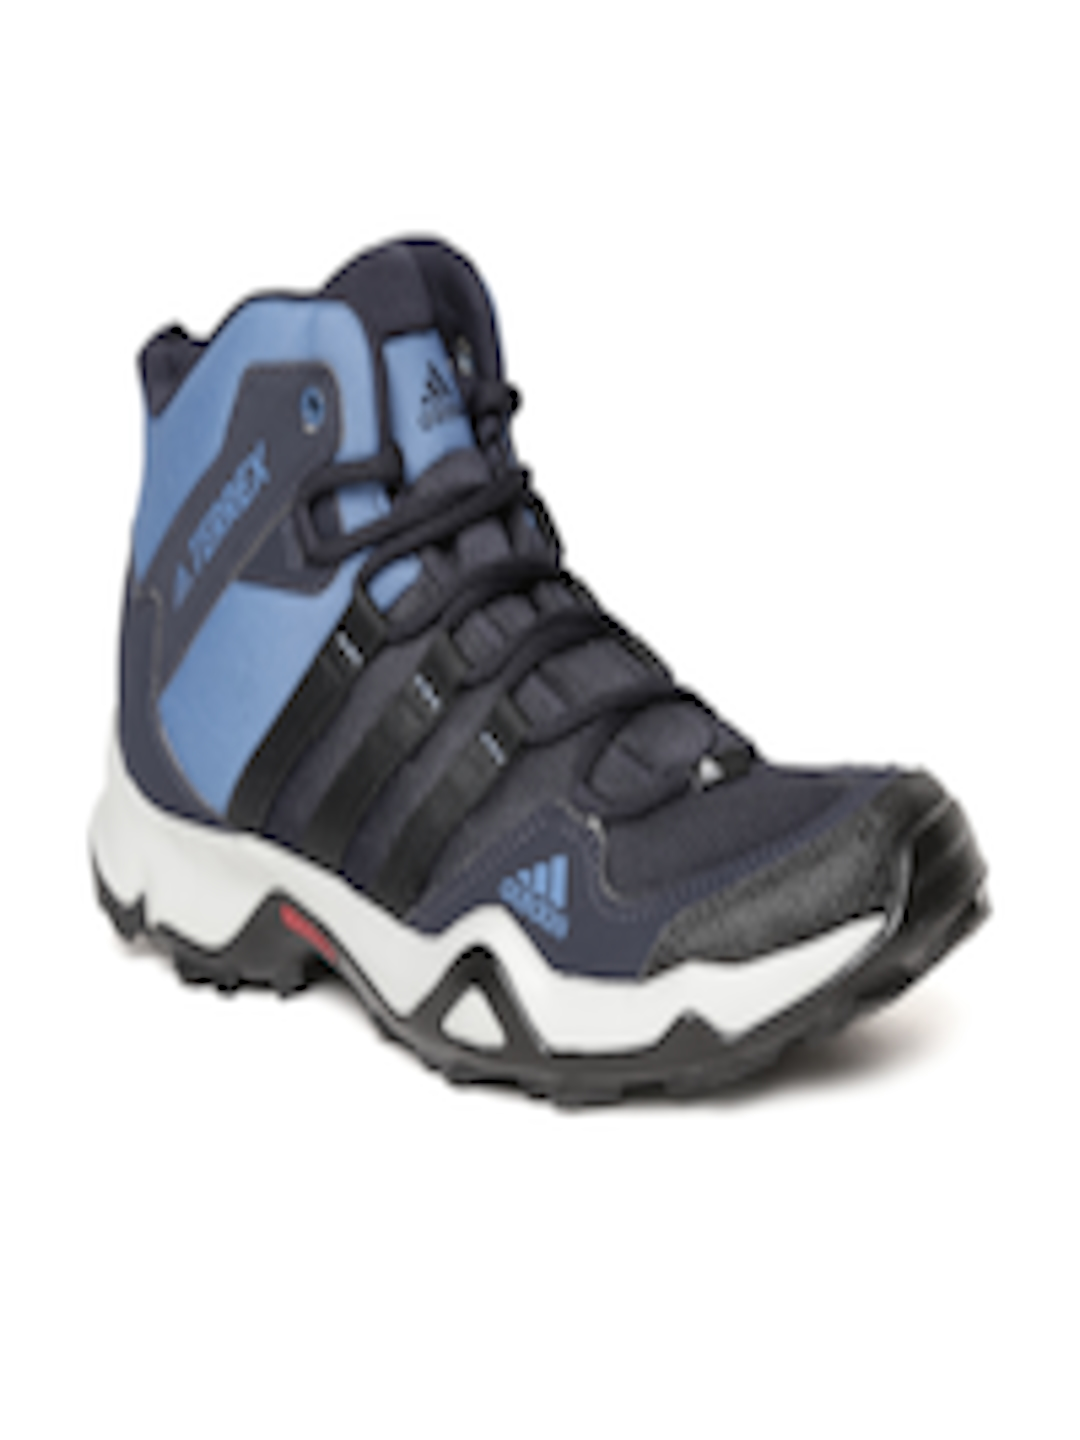 b940c947fff8 Buy Adidas Men Blue   Black Path Cross Mid AX2 Trekking Shoes - Sports Shoes  for Men 2410105